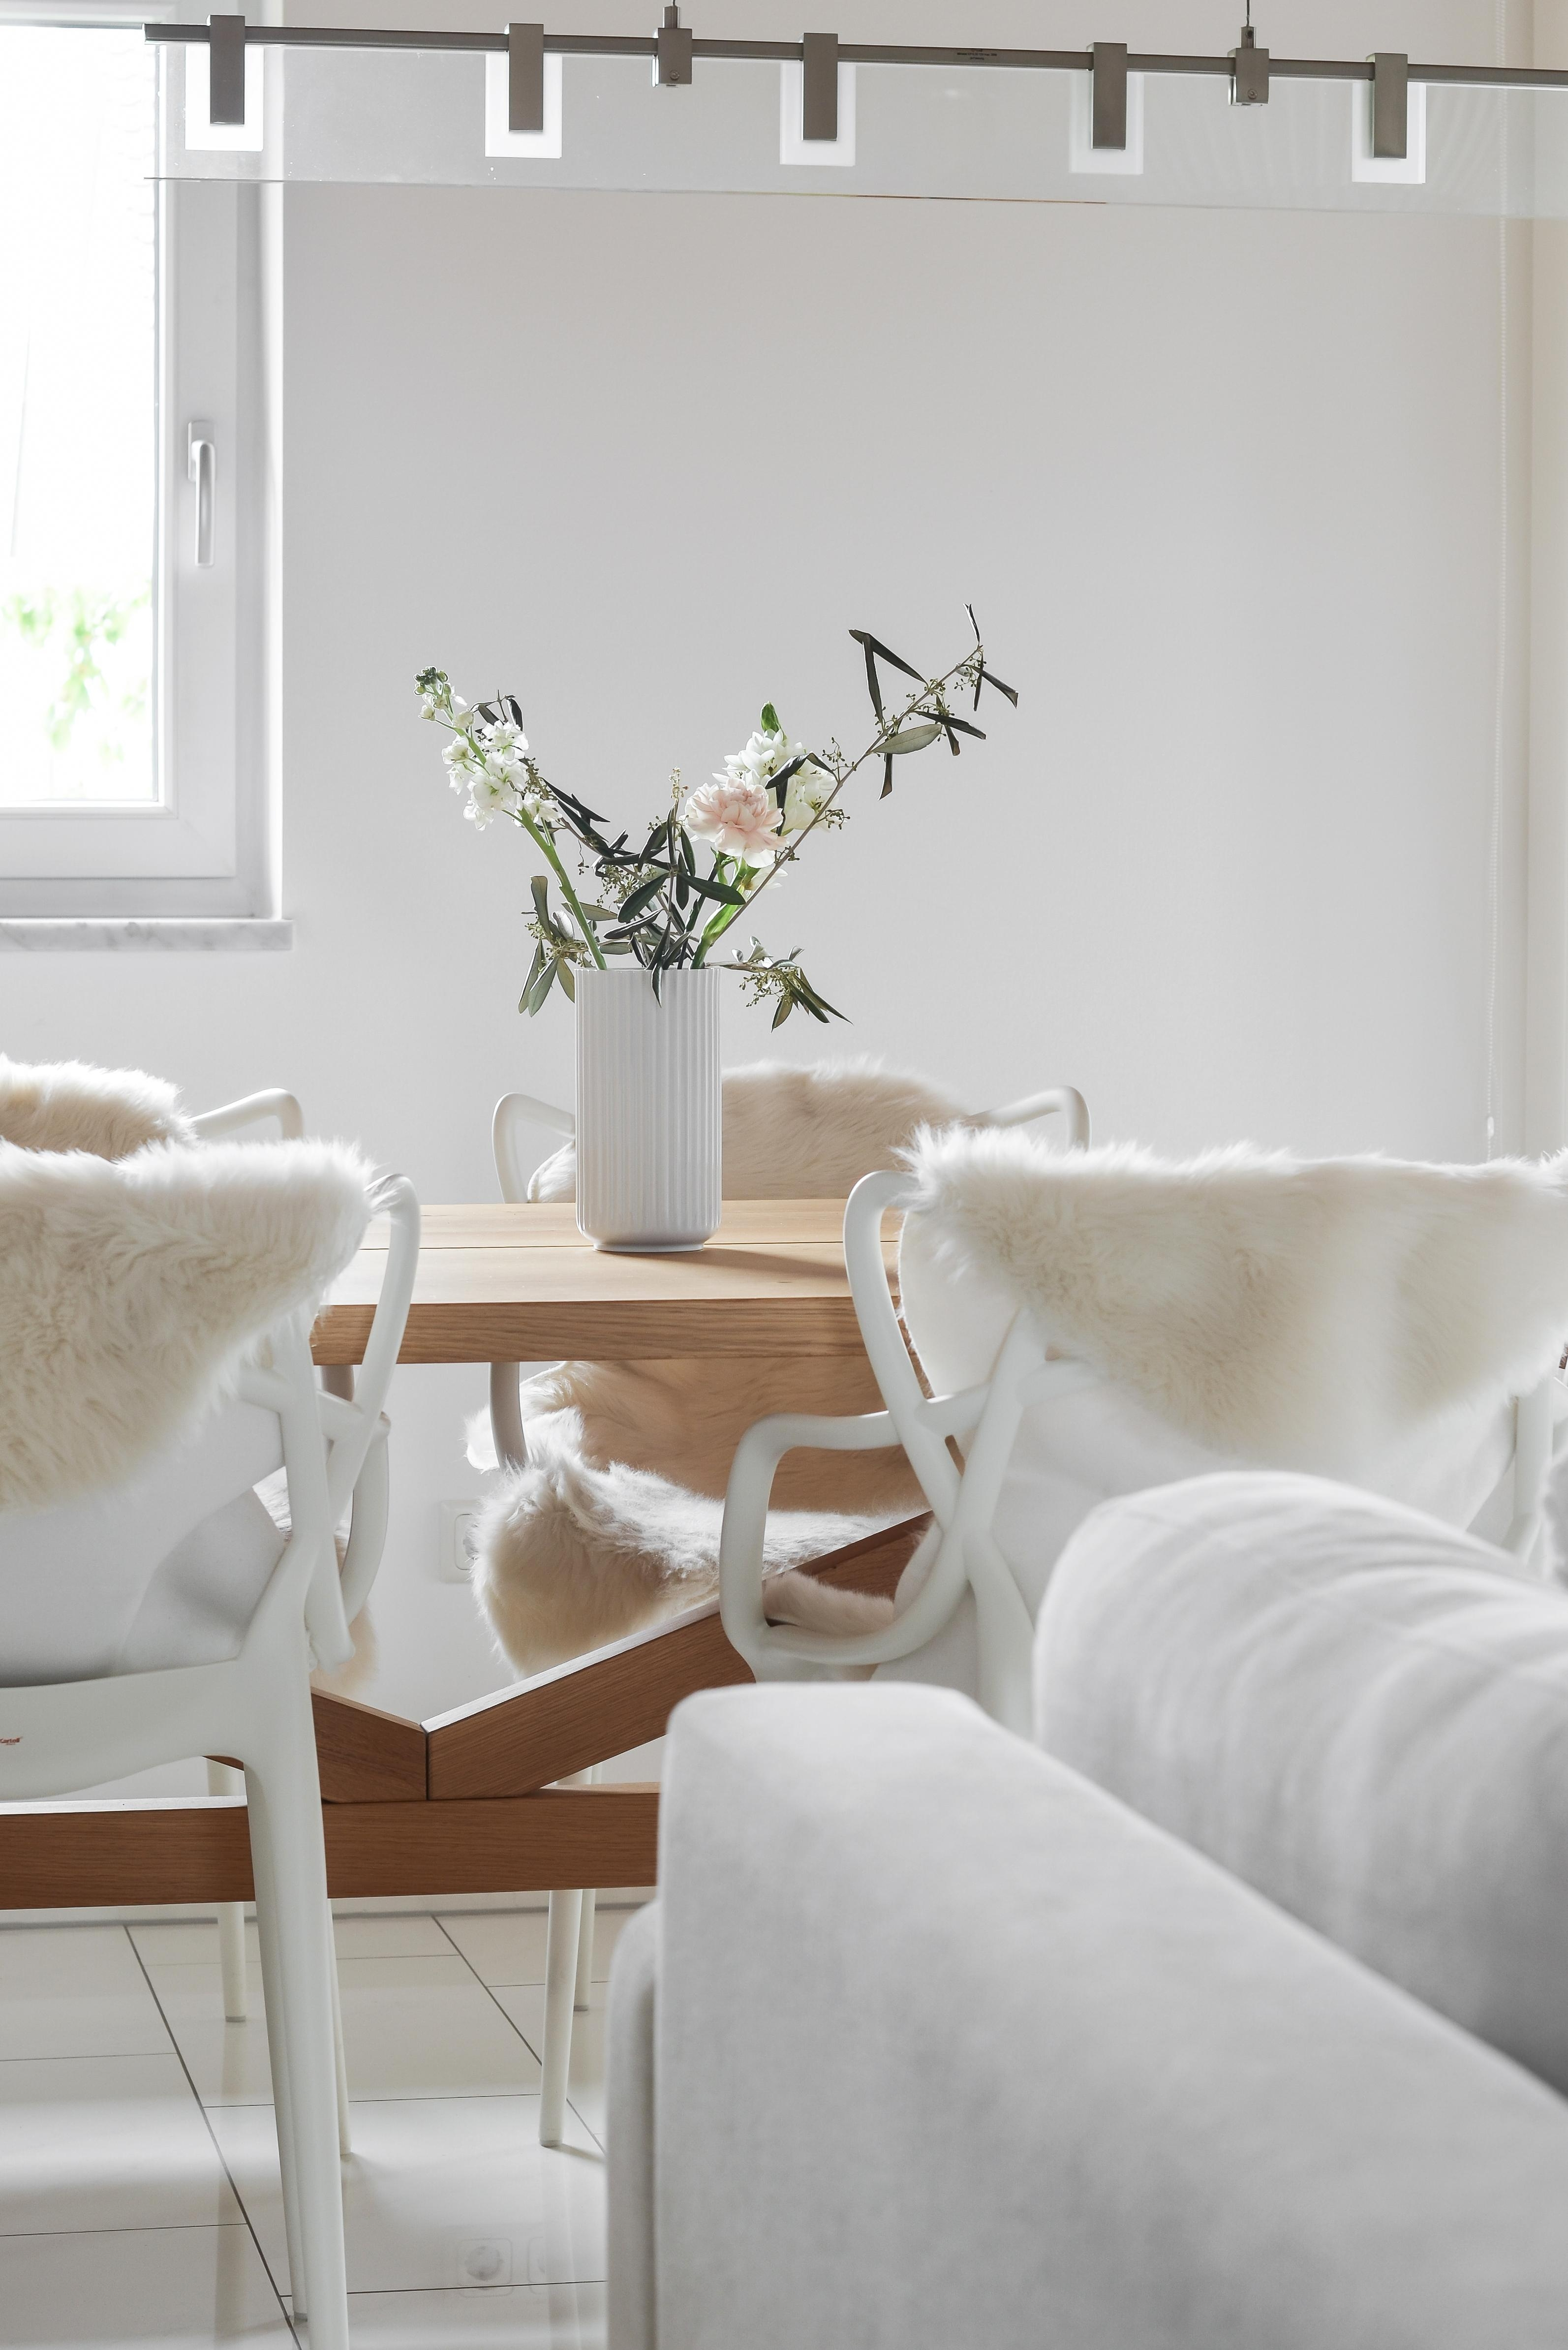 Schönes Wochenende.